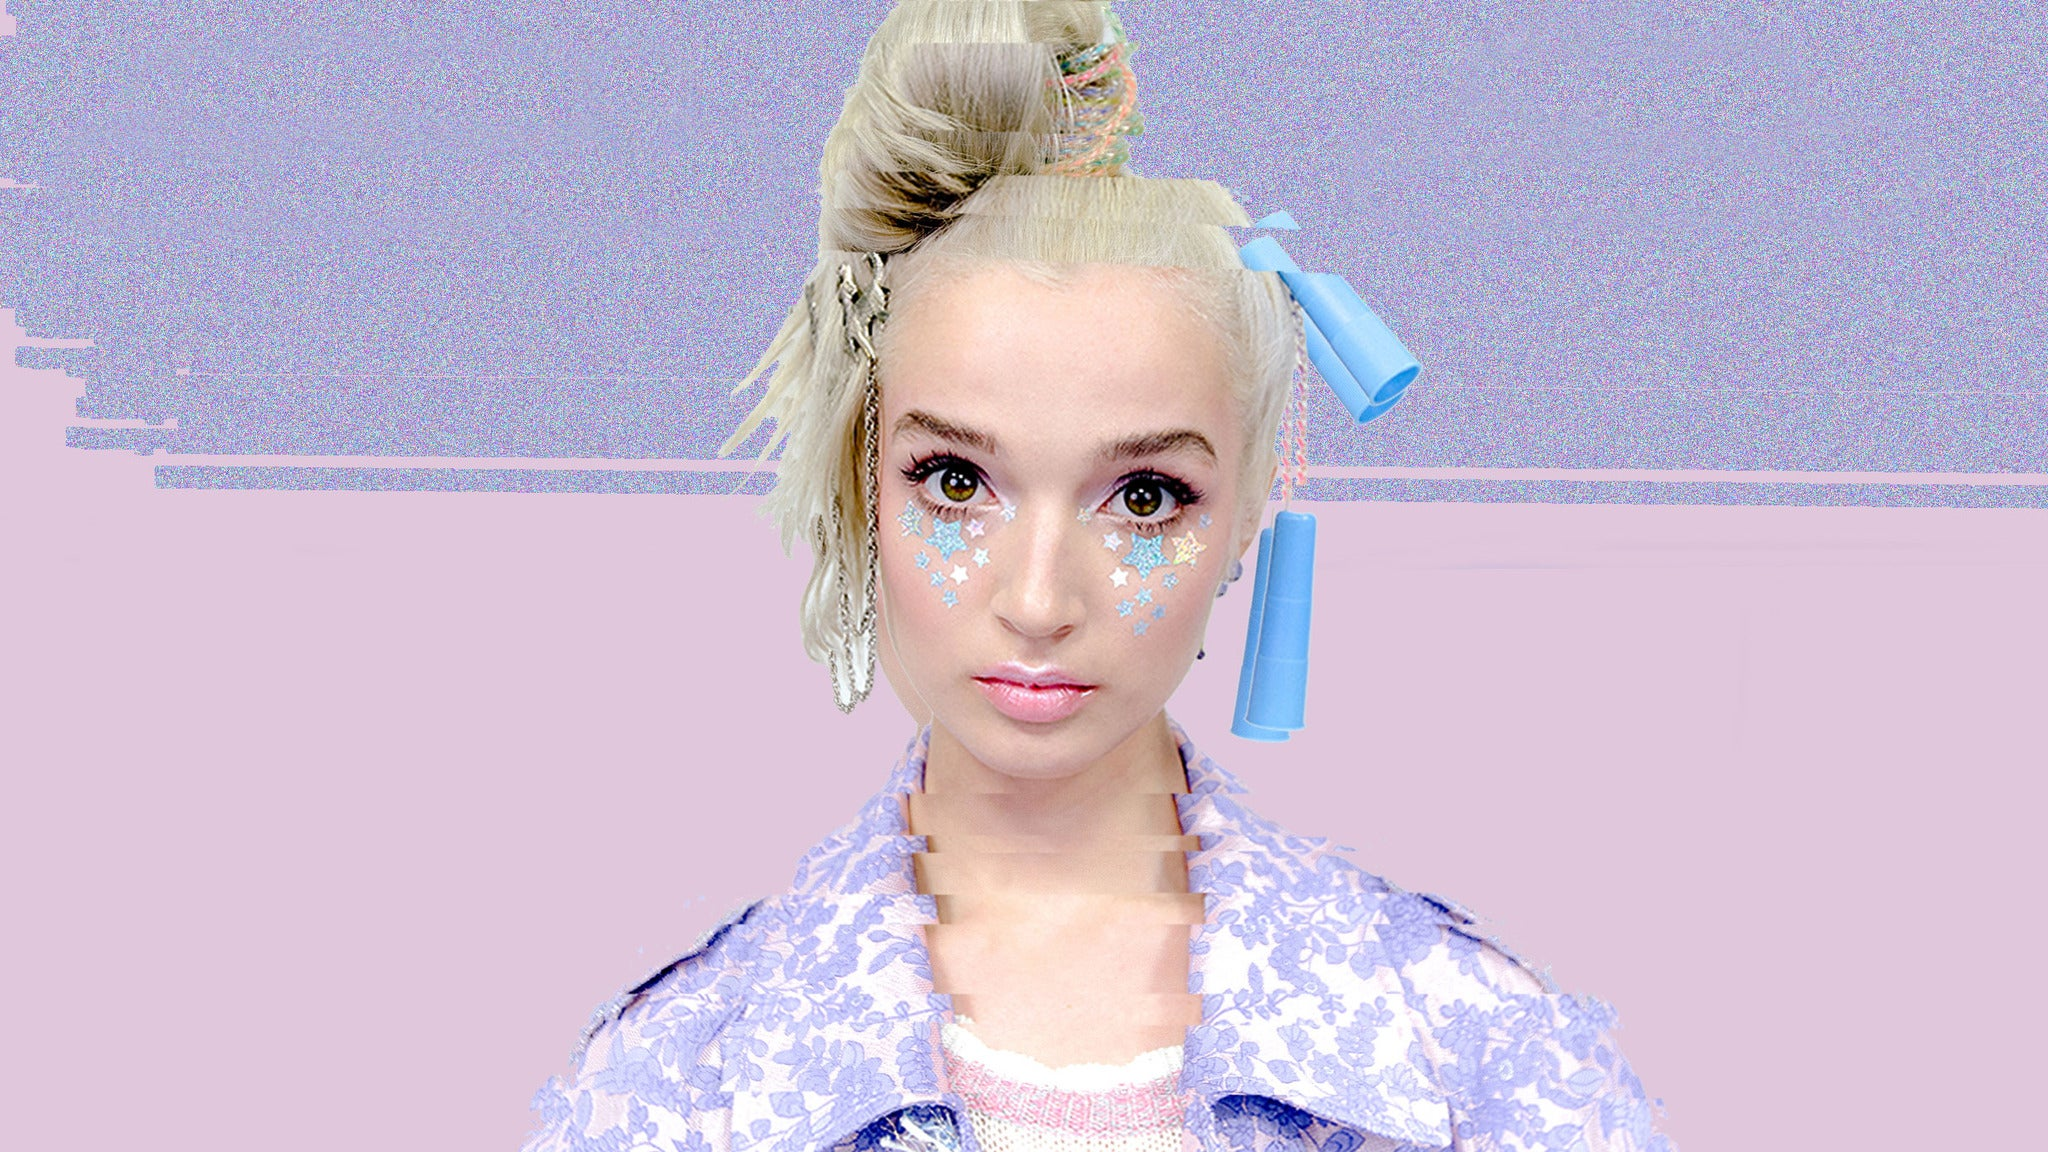 SORRY, THIS EVENT IS NO LONGER ACTIVE<br>Poppy at House of Blues San Diego - San Diego, CA 92101